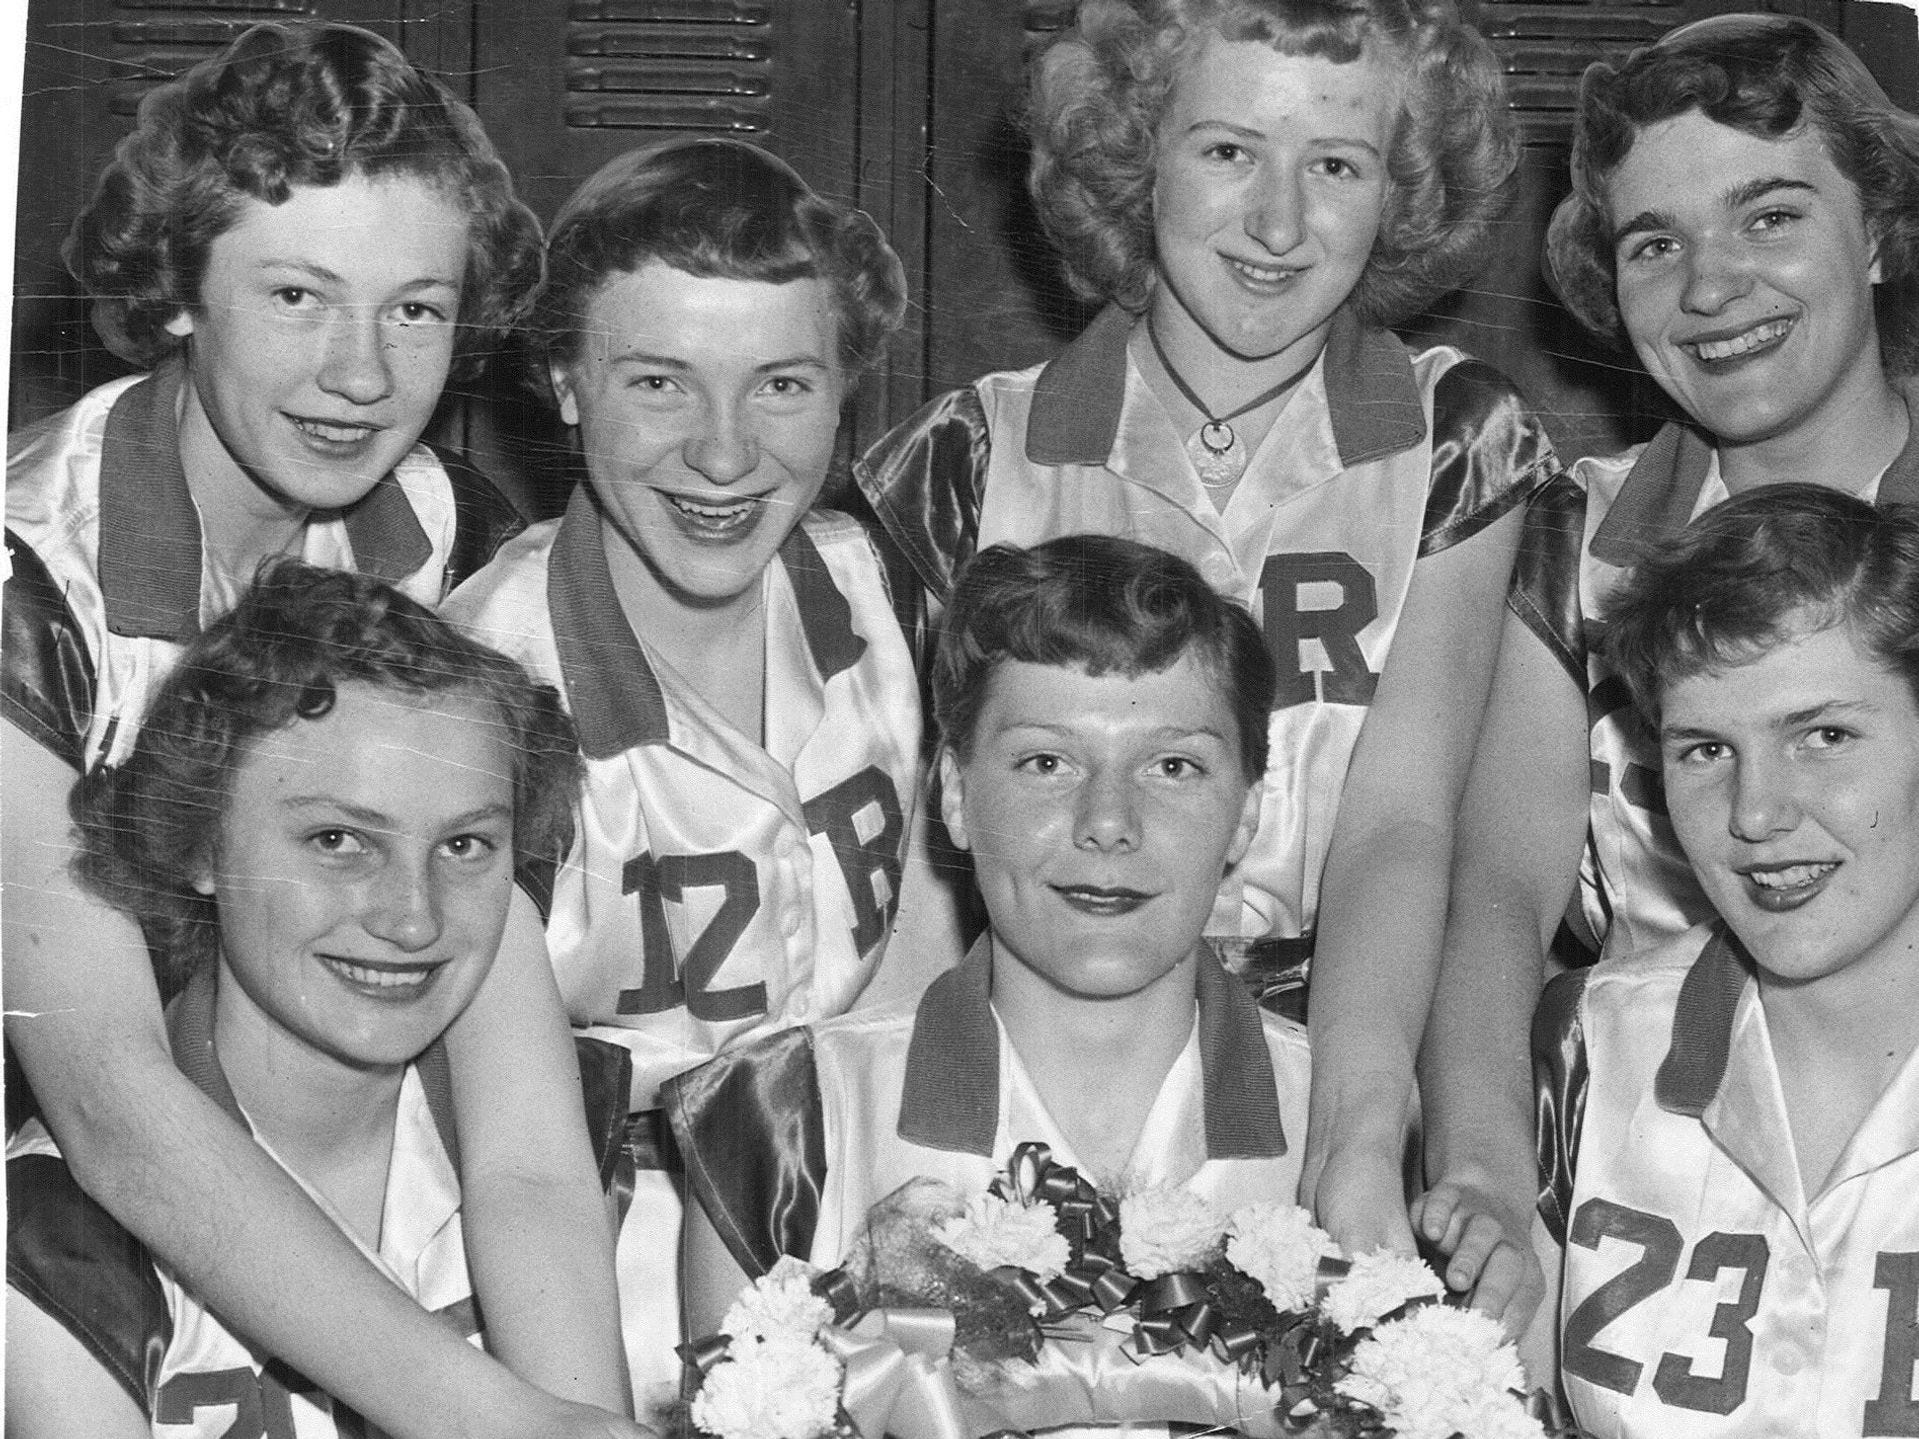 1952: Reinbeck made its first appearance in the state girlsÕ basketball tournament. From left to right, front row: Jean Shoup, Frances Billerbeck, Franceine Billerbeck; back row: LeAnn Roberts, Shirley Borfels, Rozella Blakely and Marian Philp. Register file photo